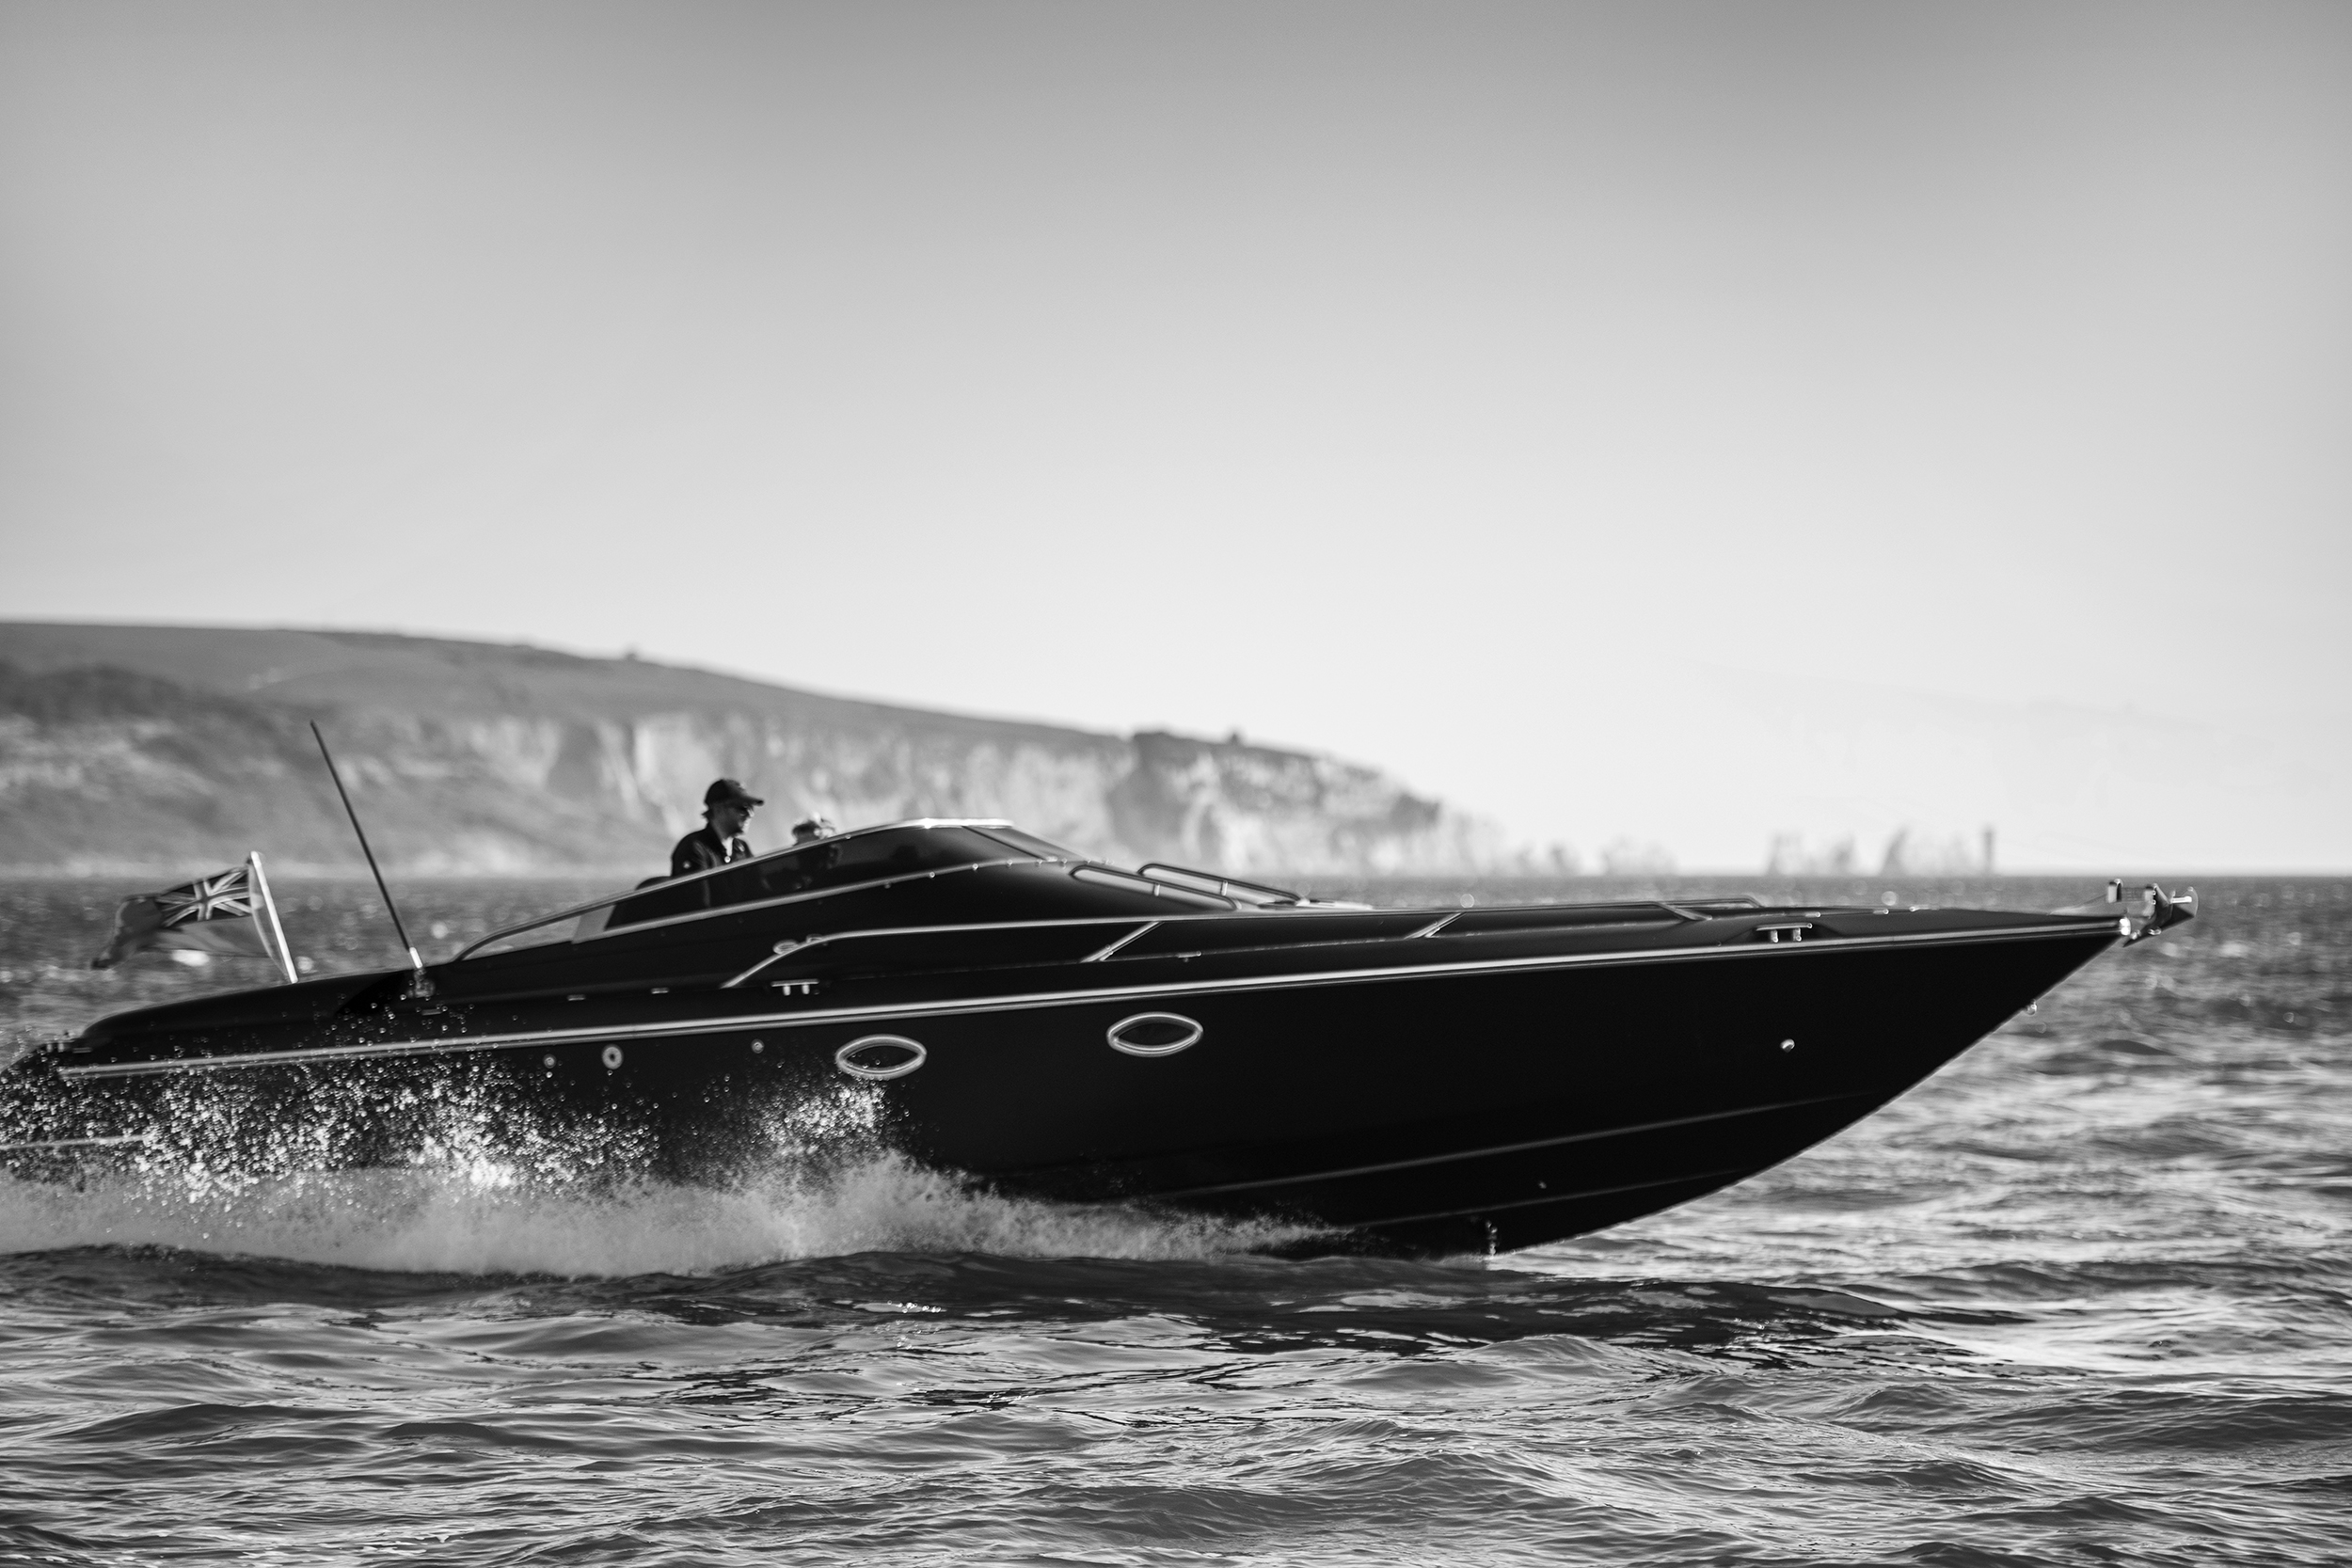 AERO power boat charters sailing from Lymington to the Isle of Wight